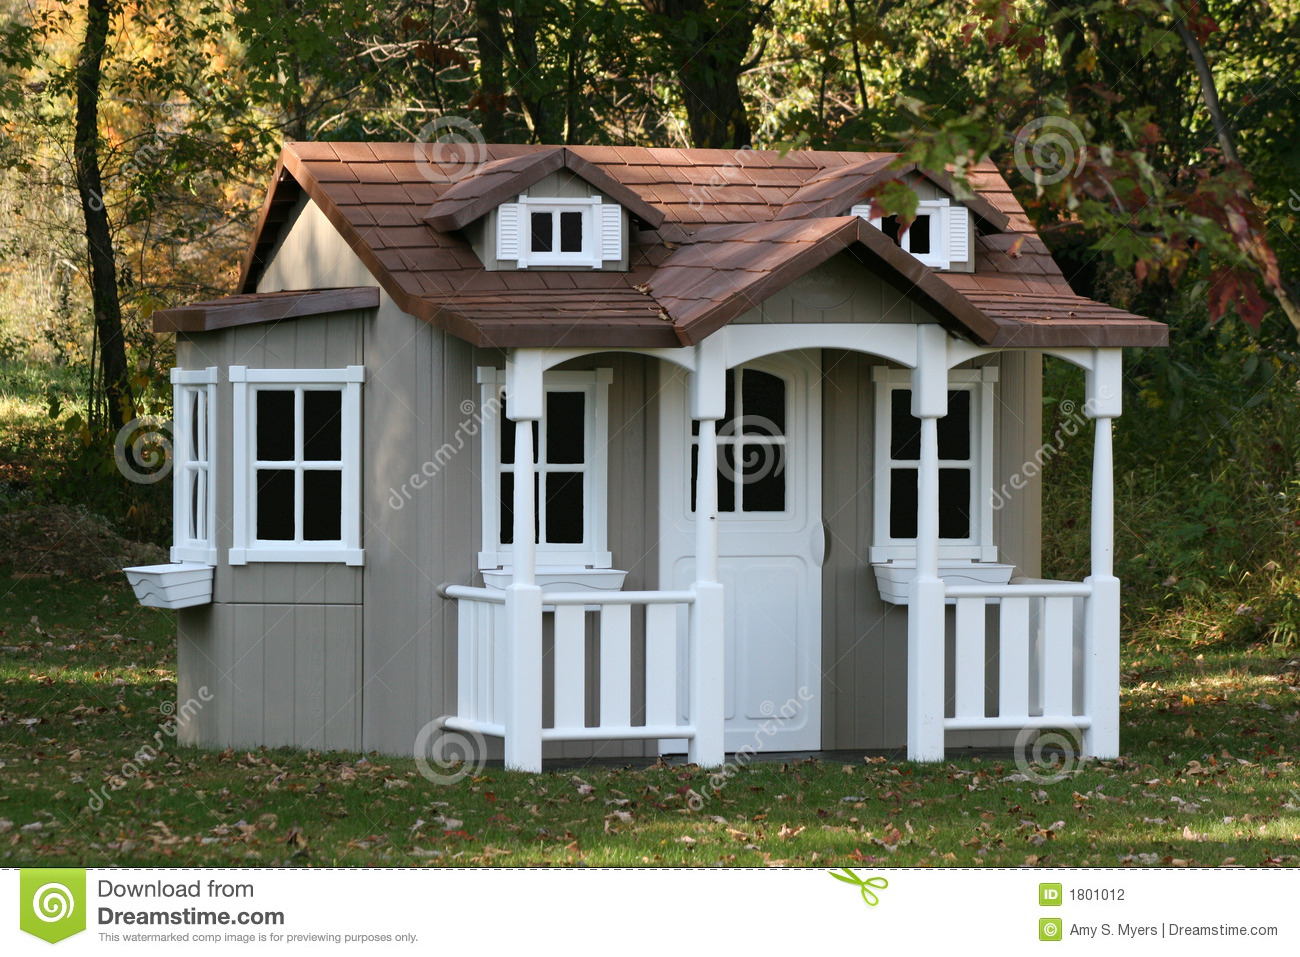 Childrens Playhouse Stock Photography Image 1801012